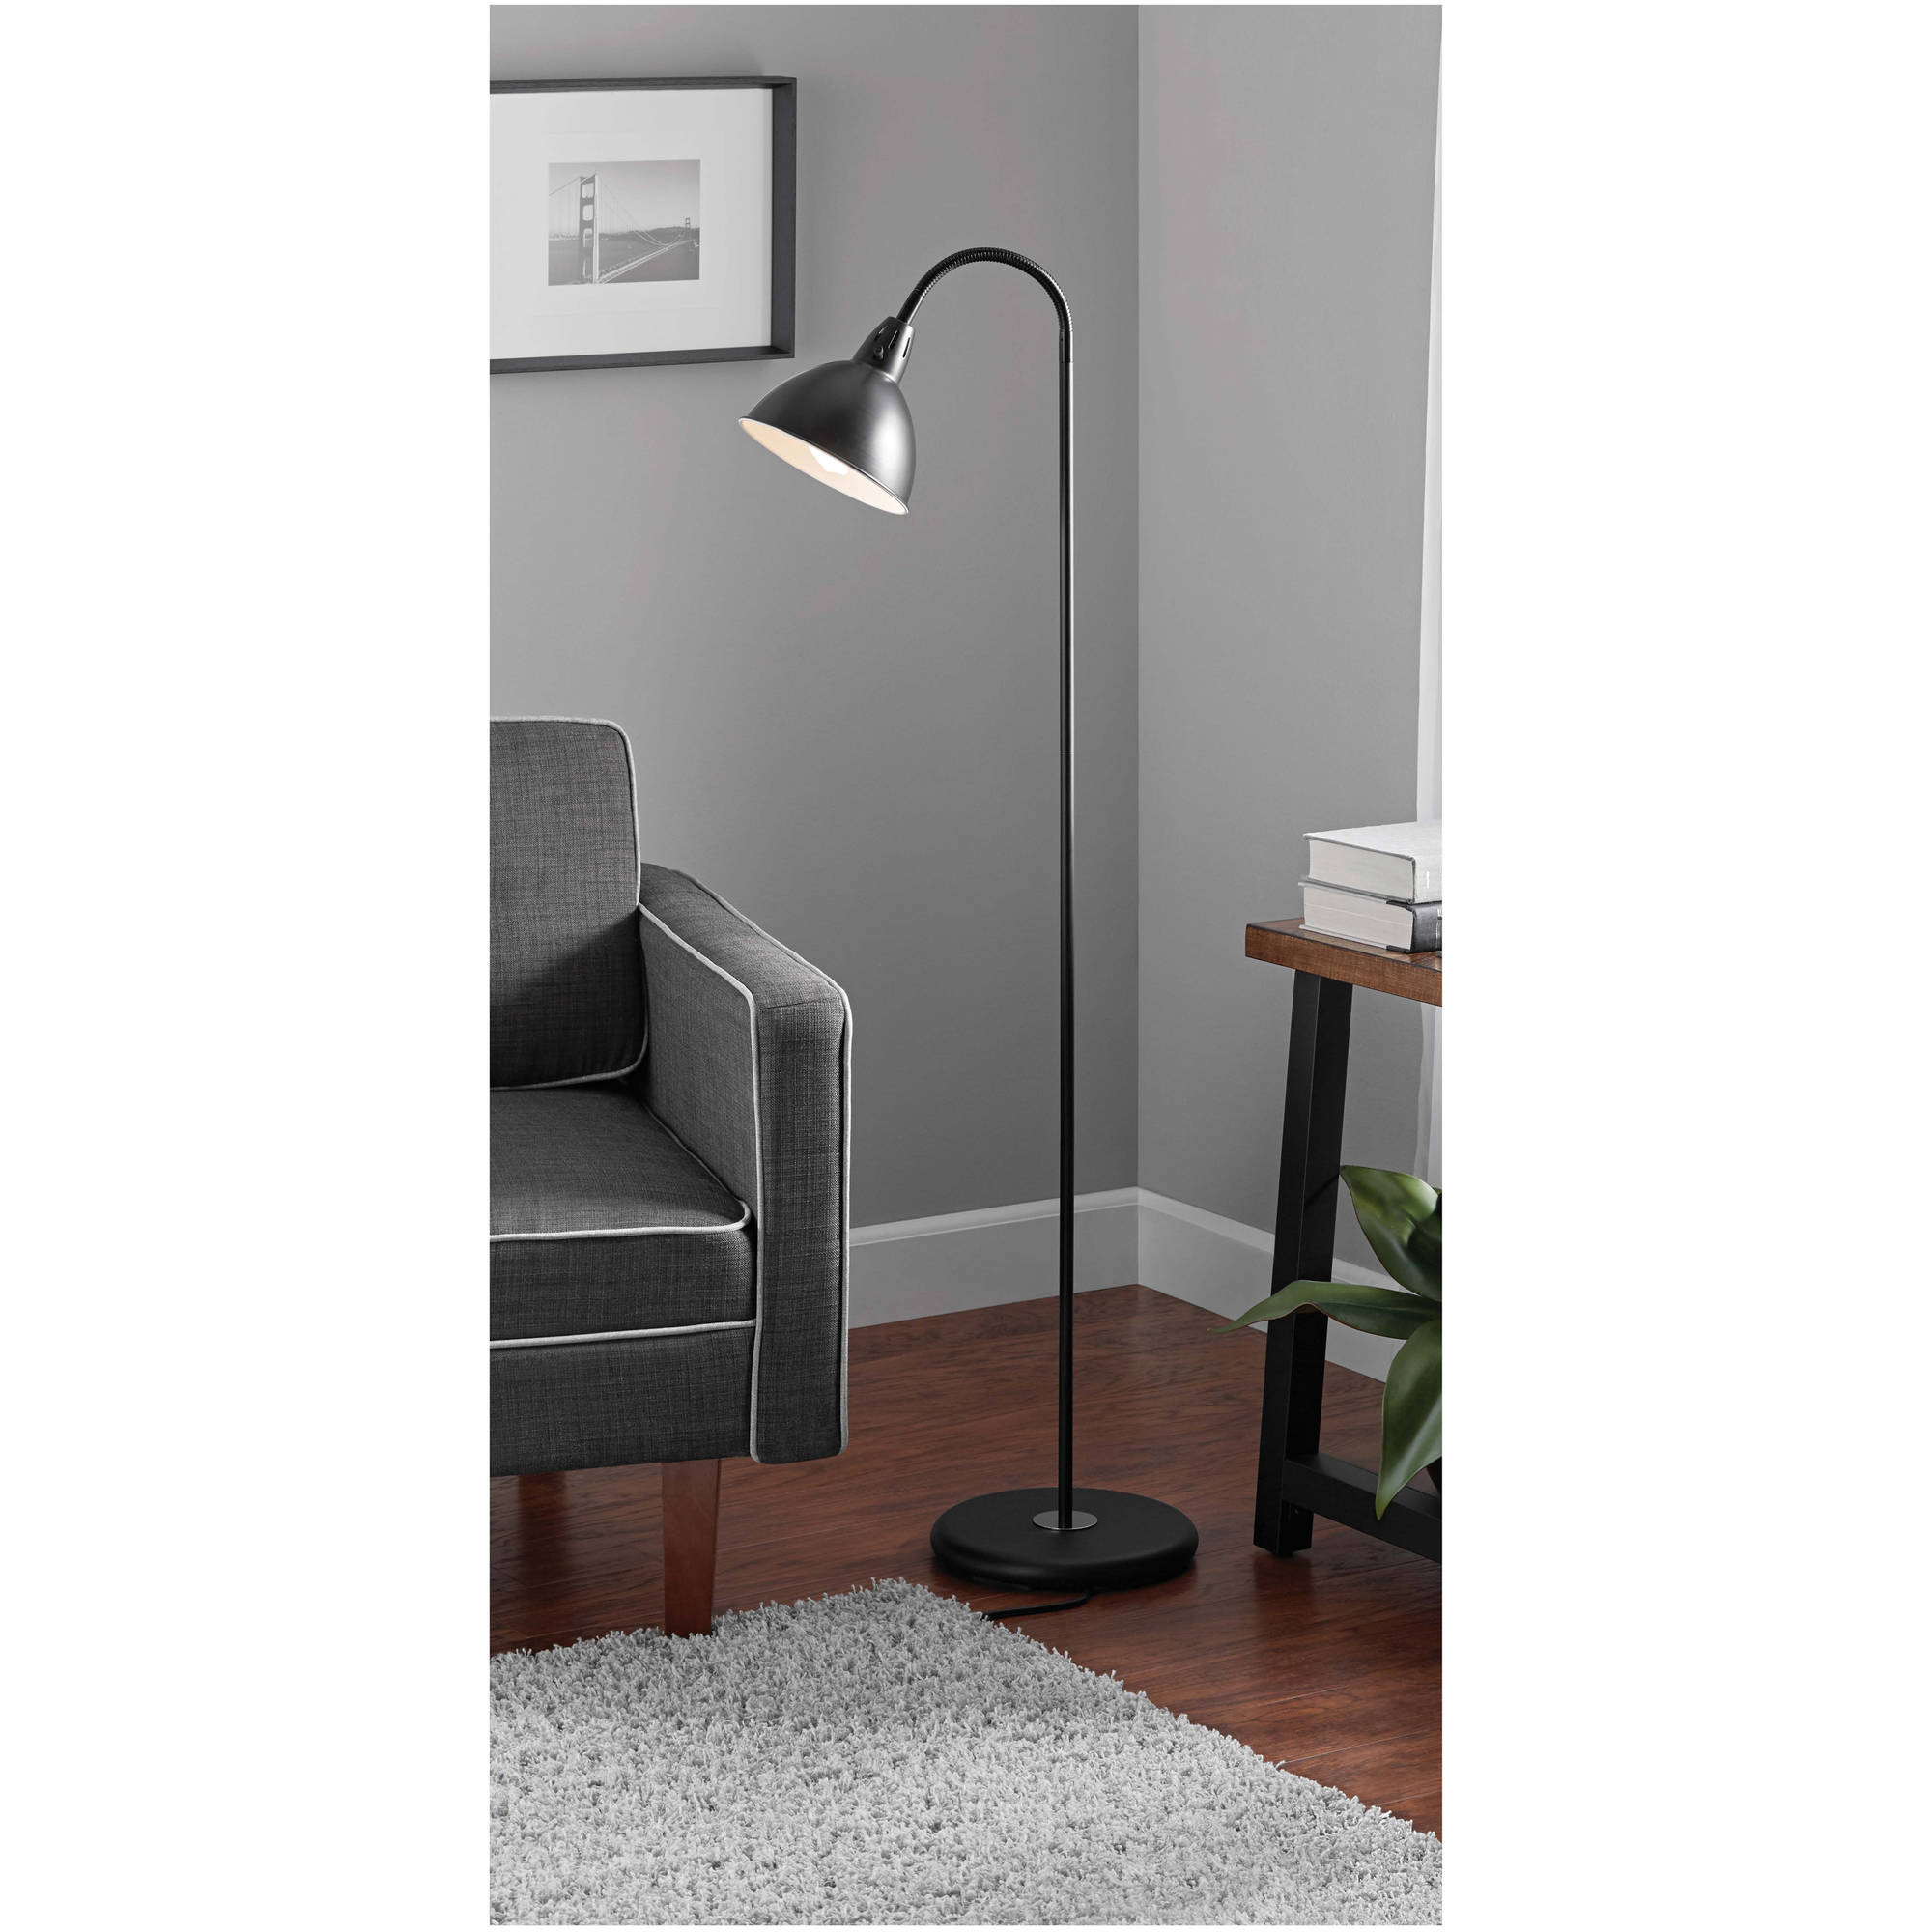 Floor lamps mainstays black gooseneck floor lamp jameslax Image collections